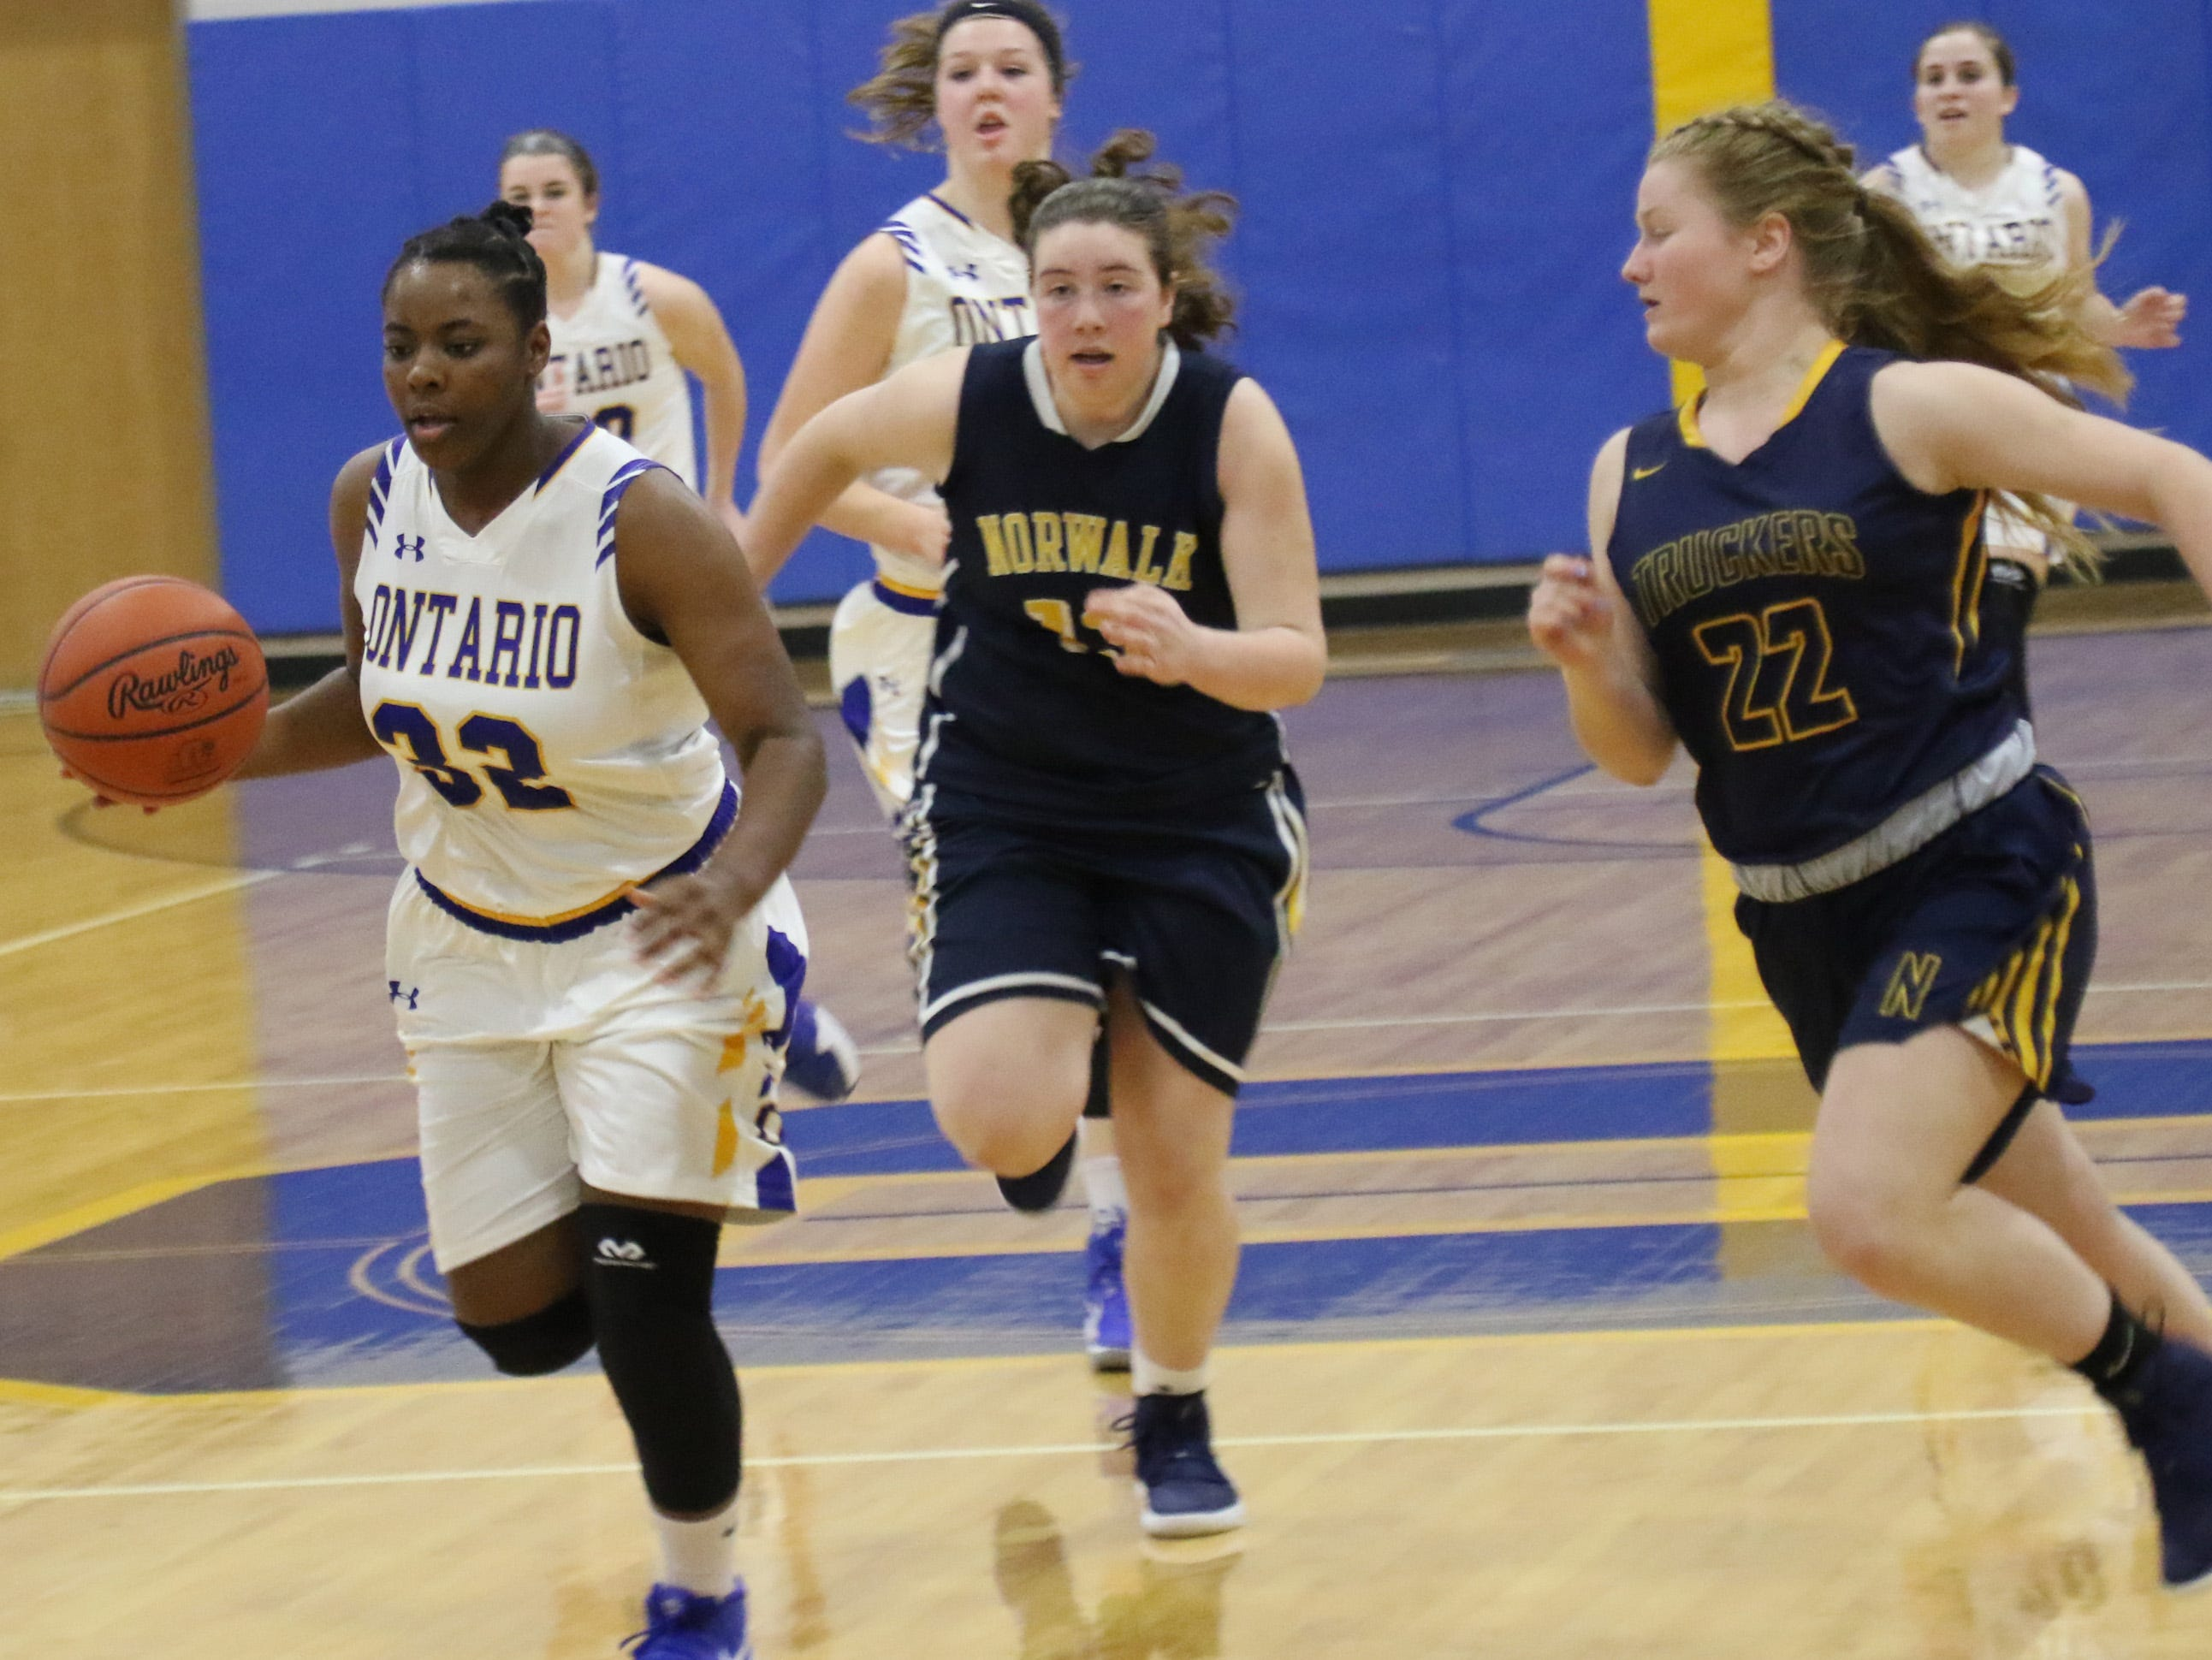 Ontraio's Mecca Sewell moves the ball while playing against Norwalk on Wednesday night.